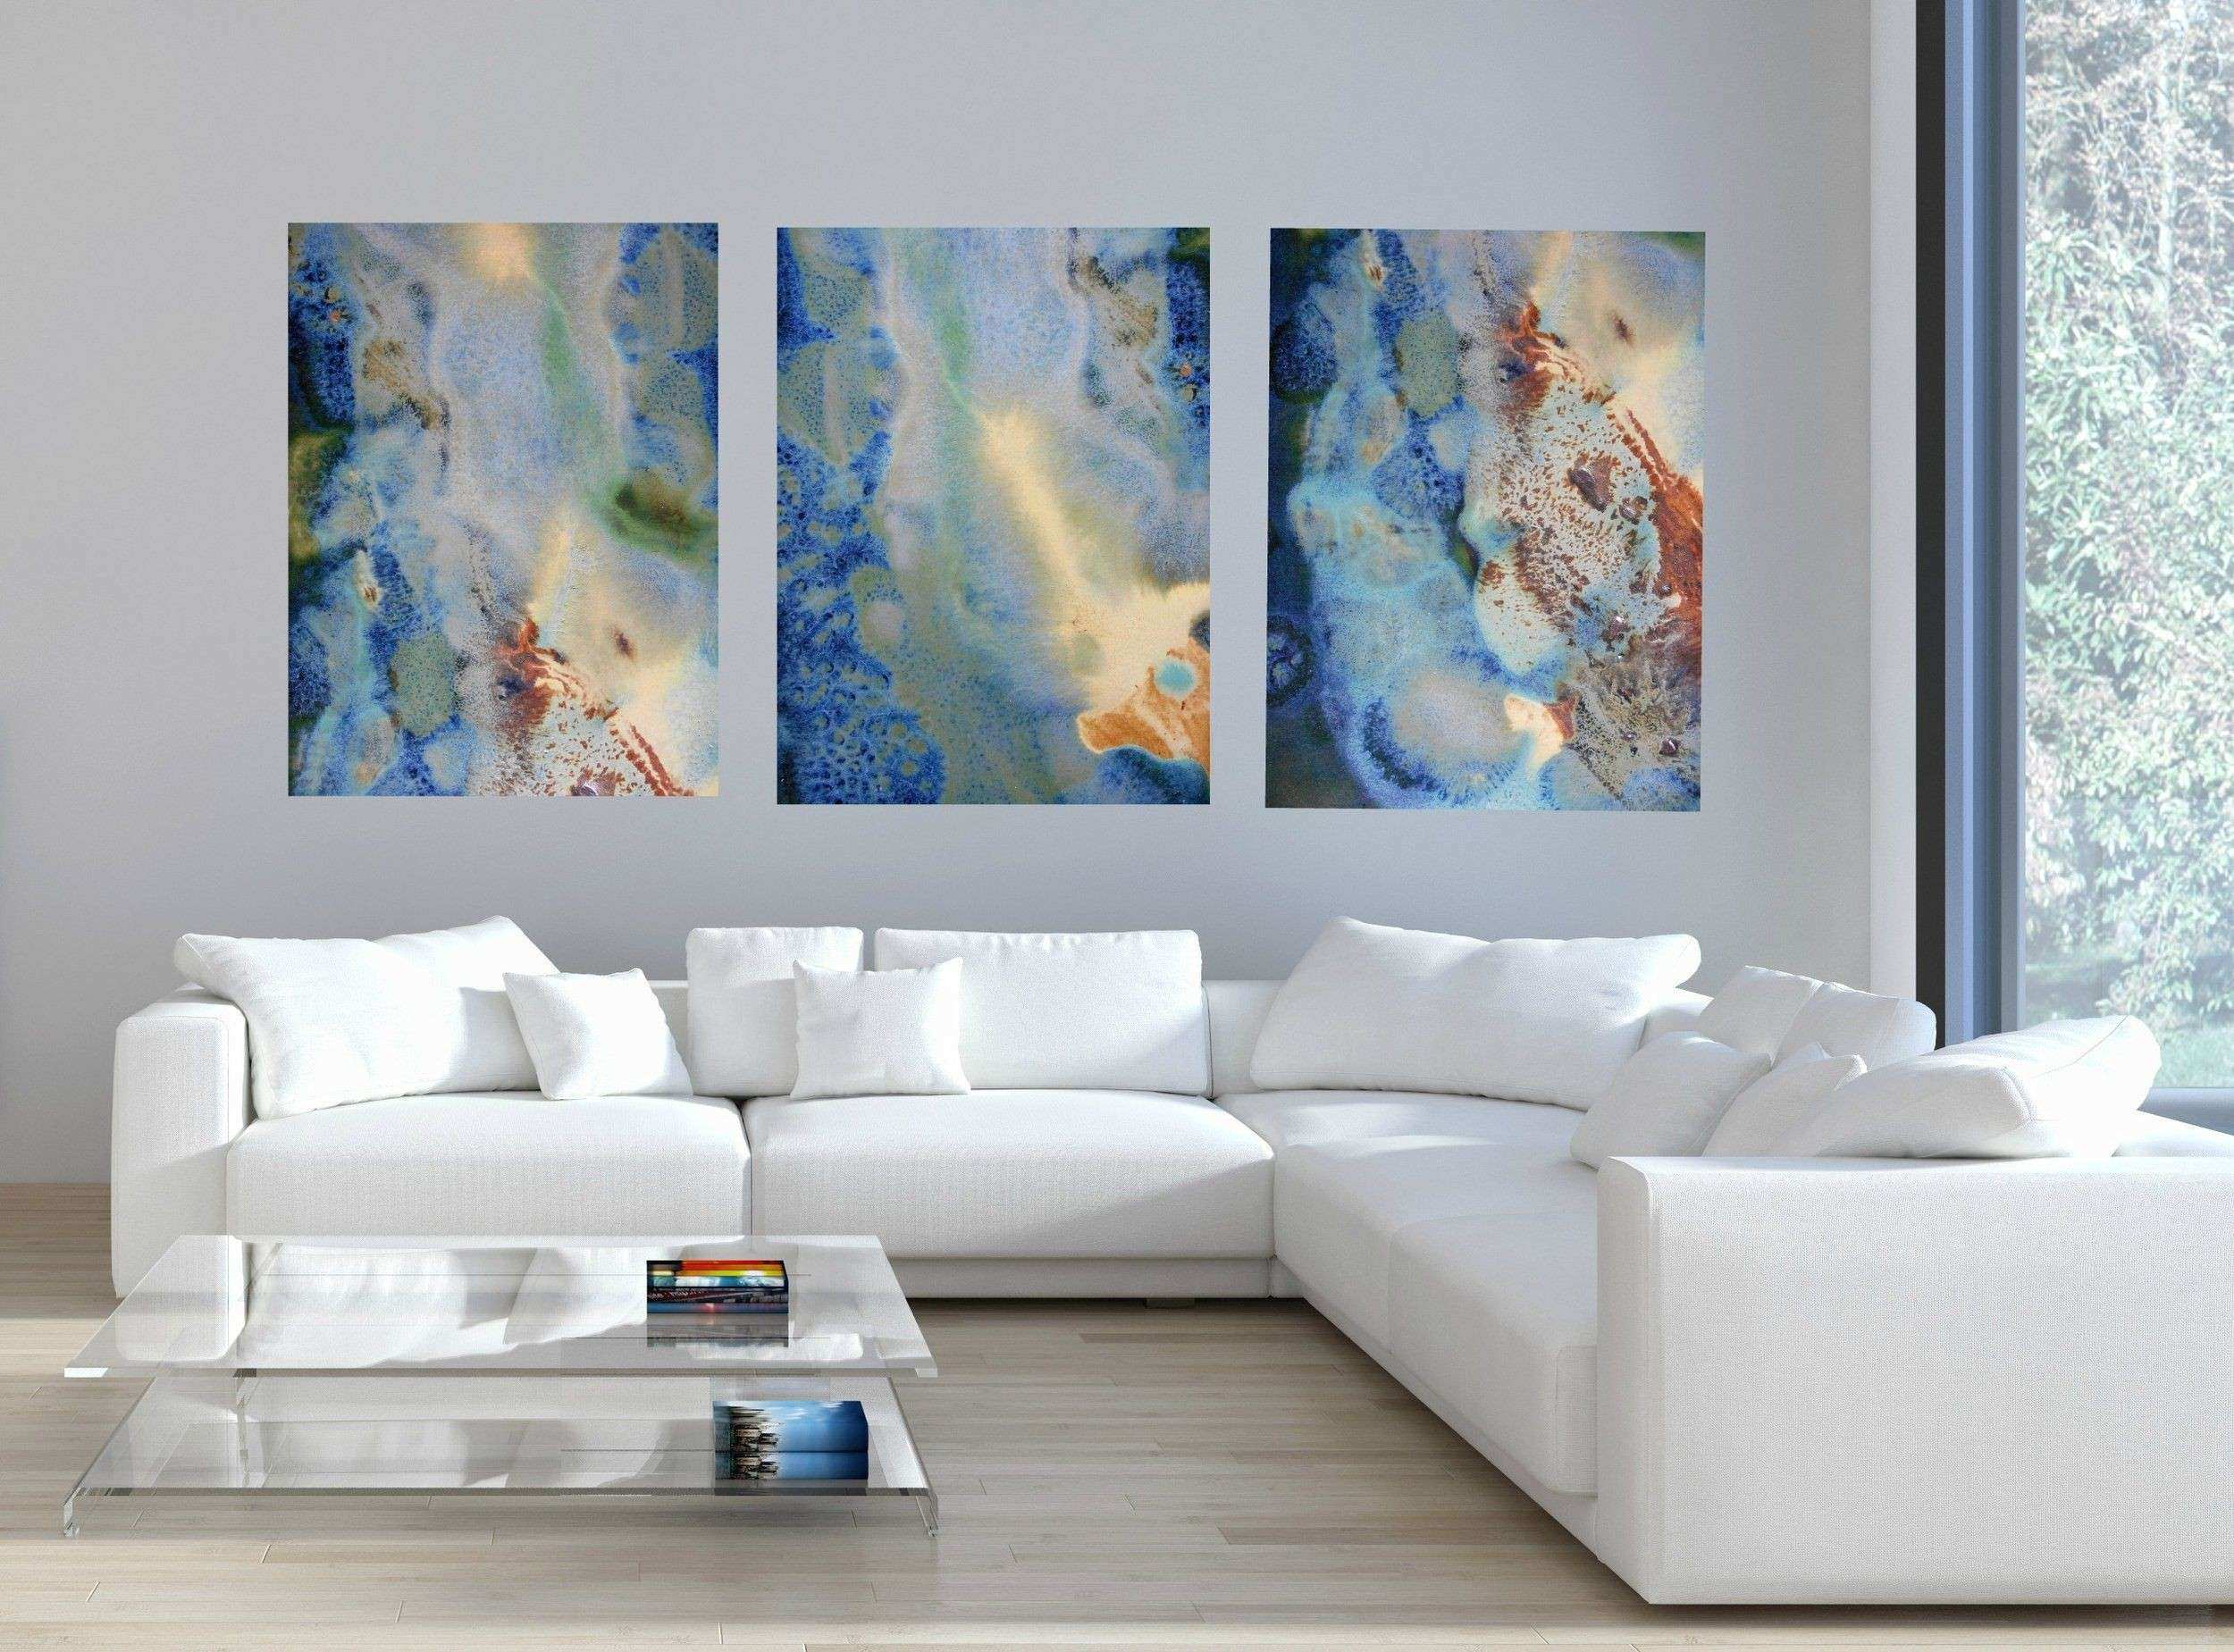 Set of 3 Rectangular Green Blue & Yellow Abstract Canvas Prints